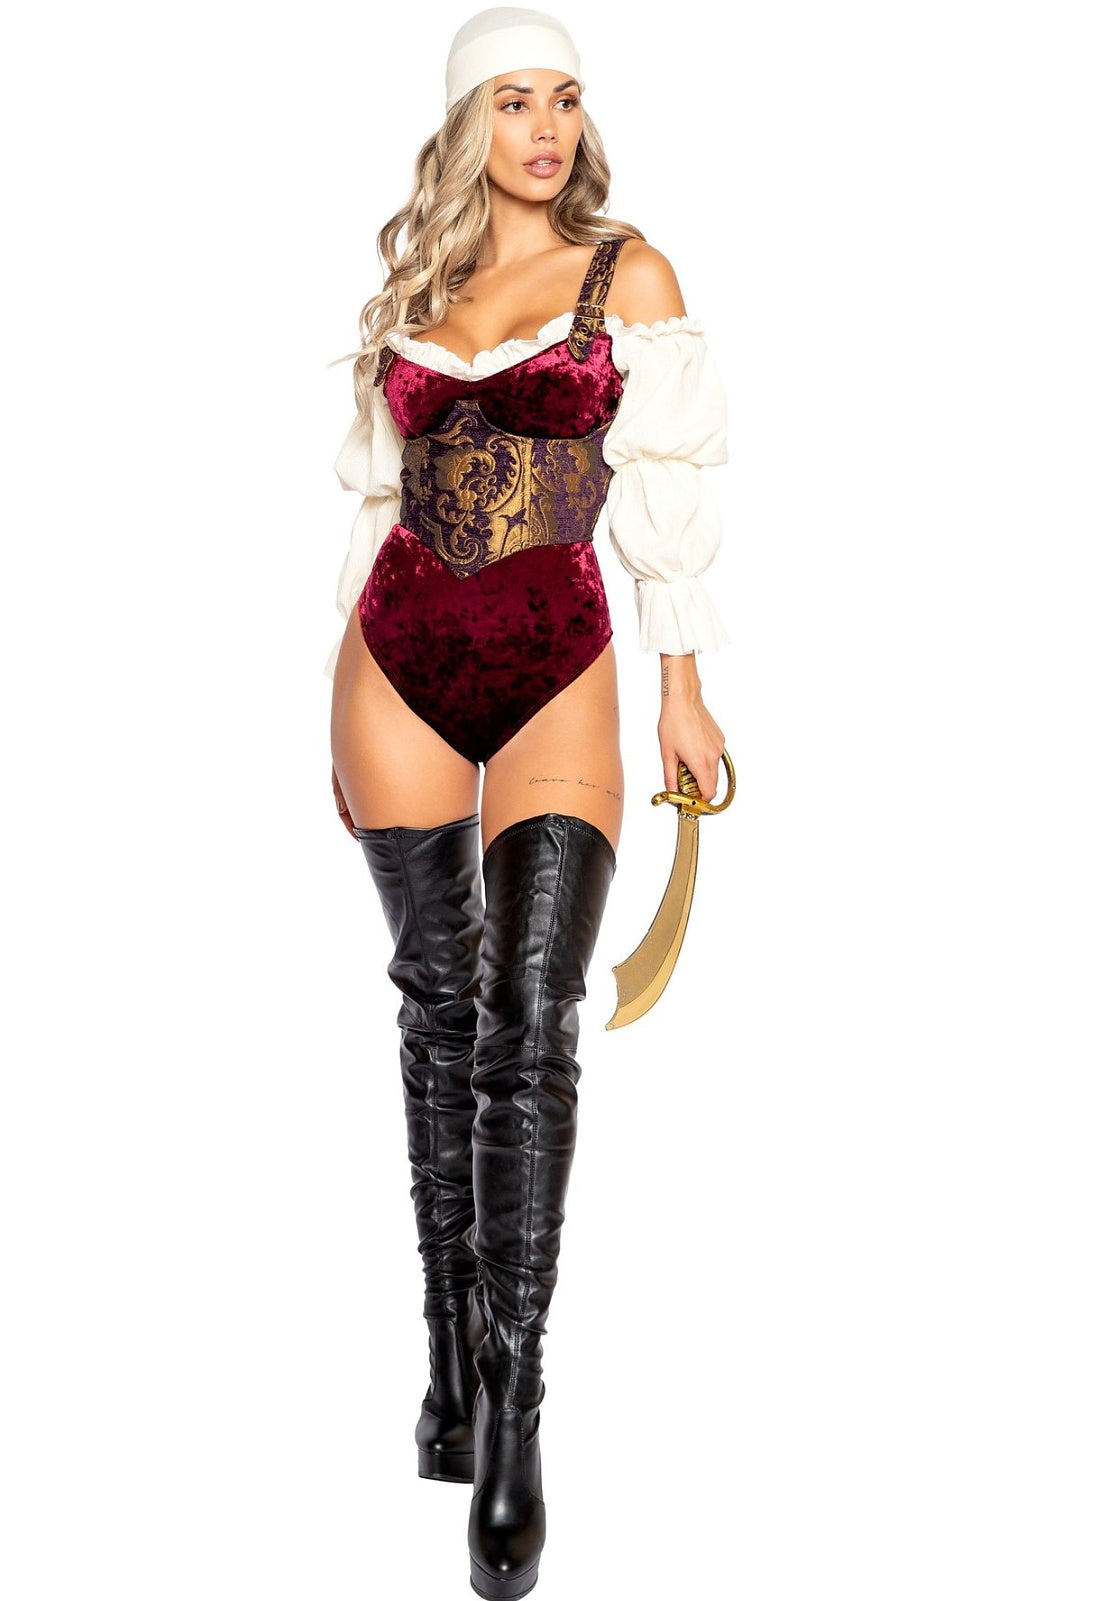 Pirate maiden costume